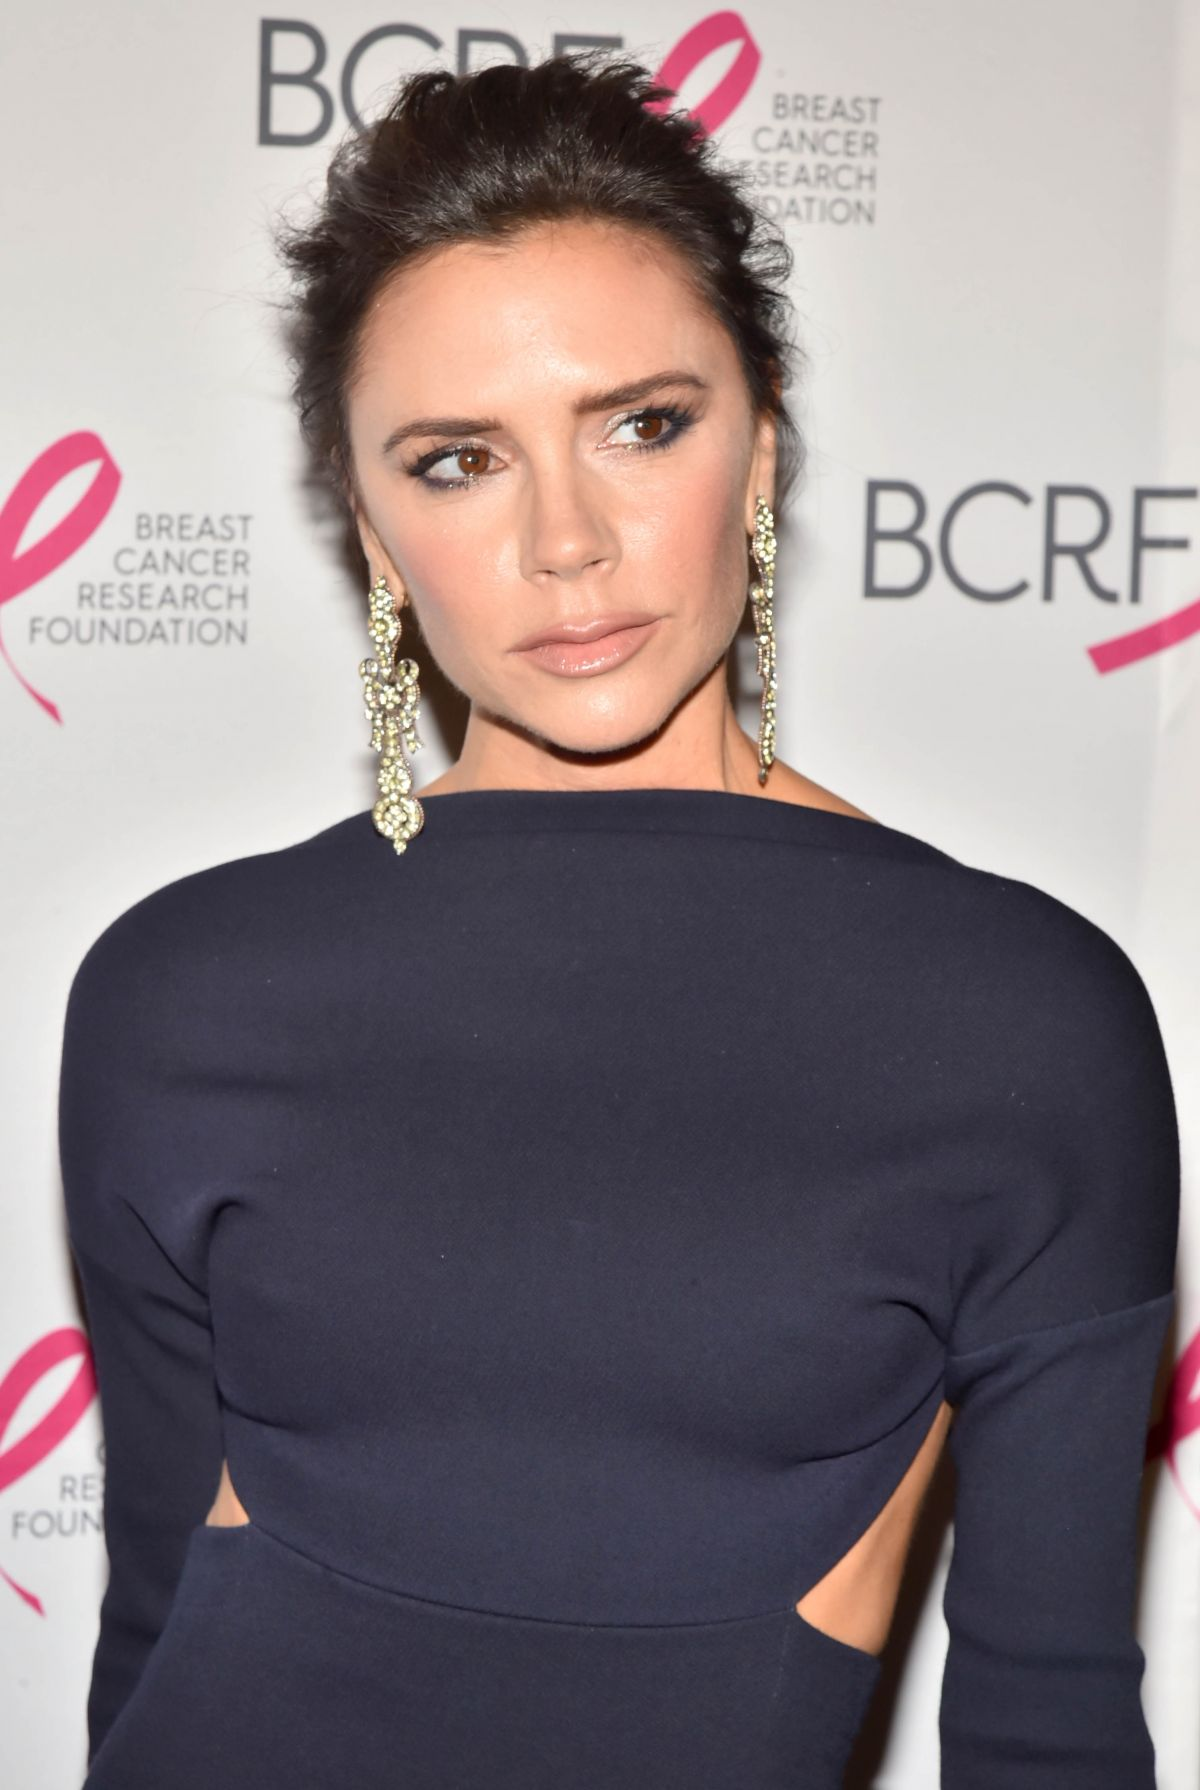 VICTORIA BECKHAM at The Hot Pink Party in New York 05/12/2017